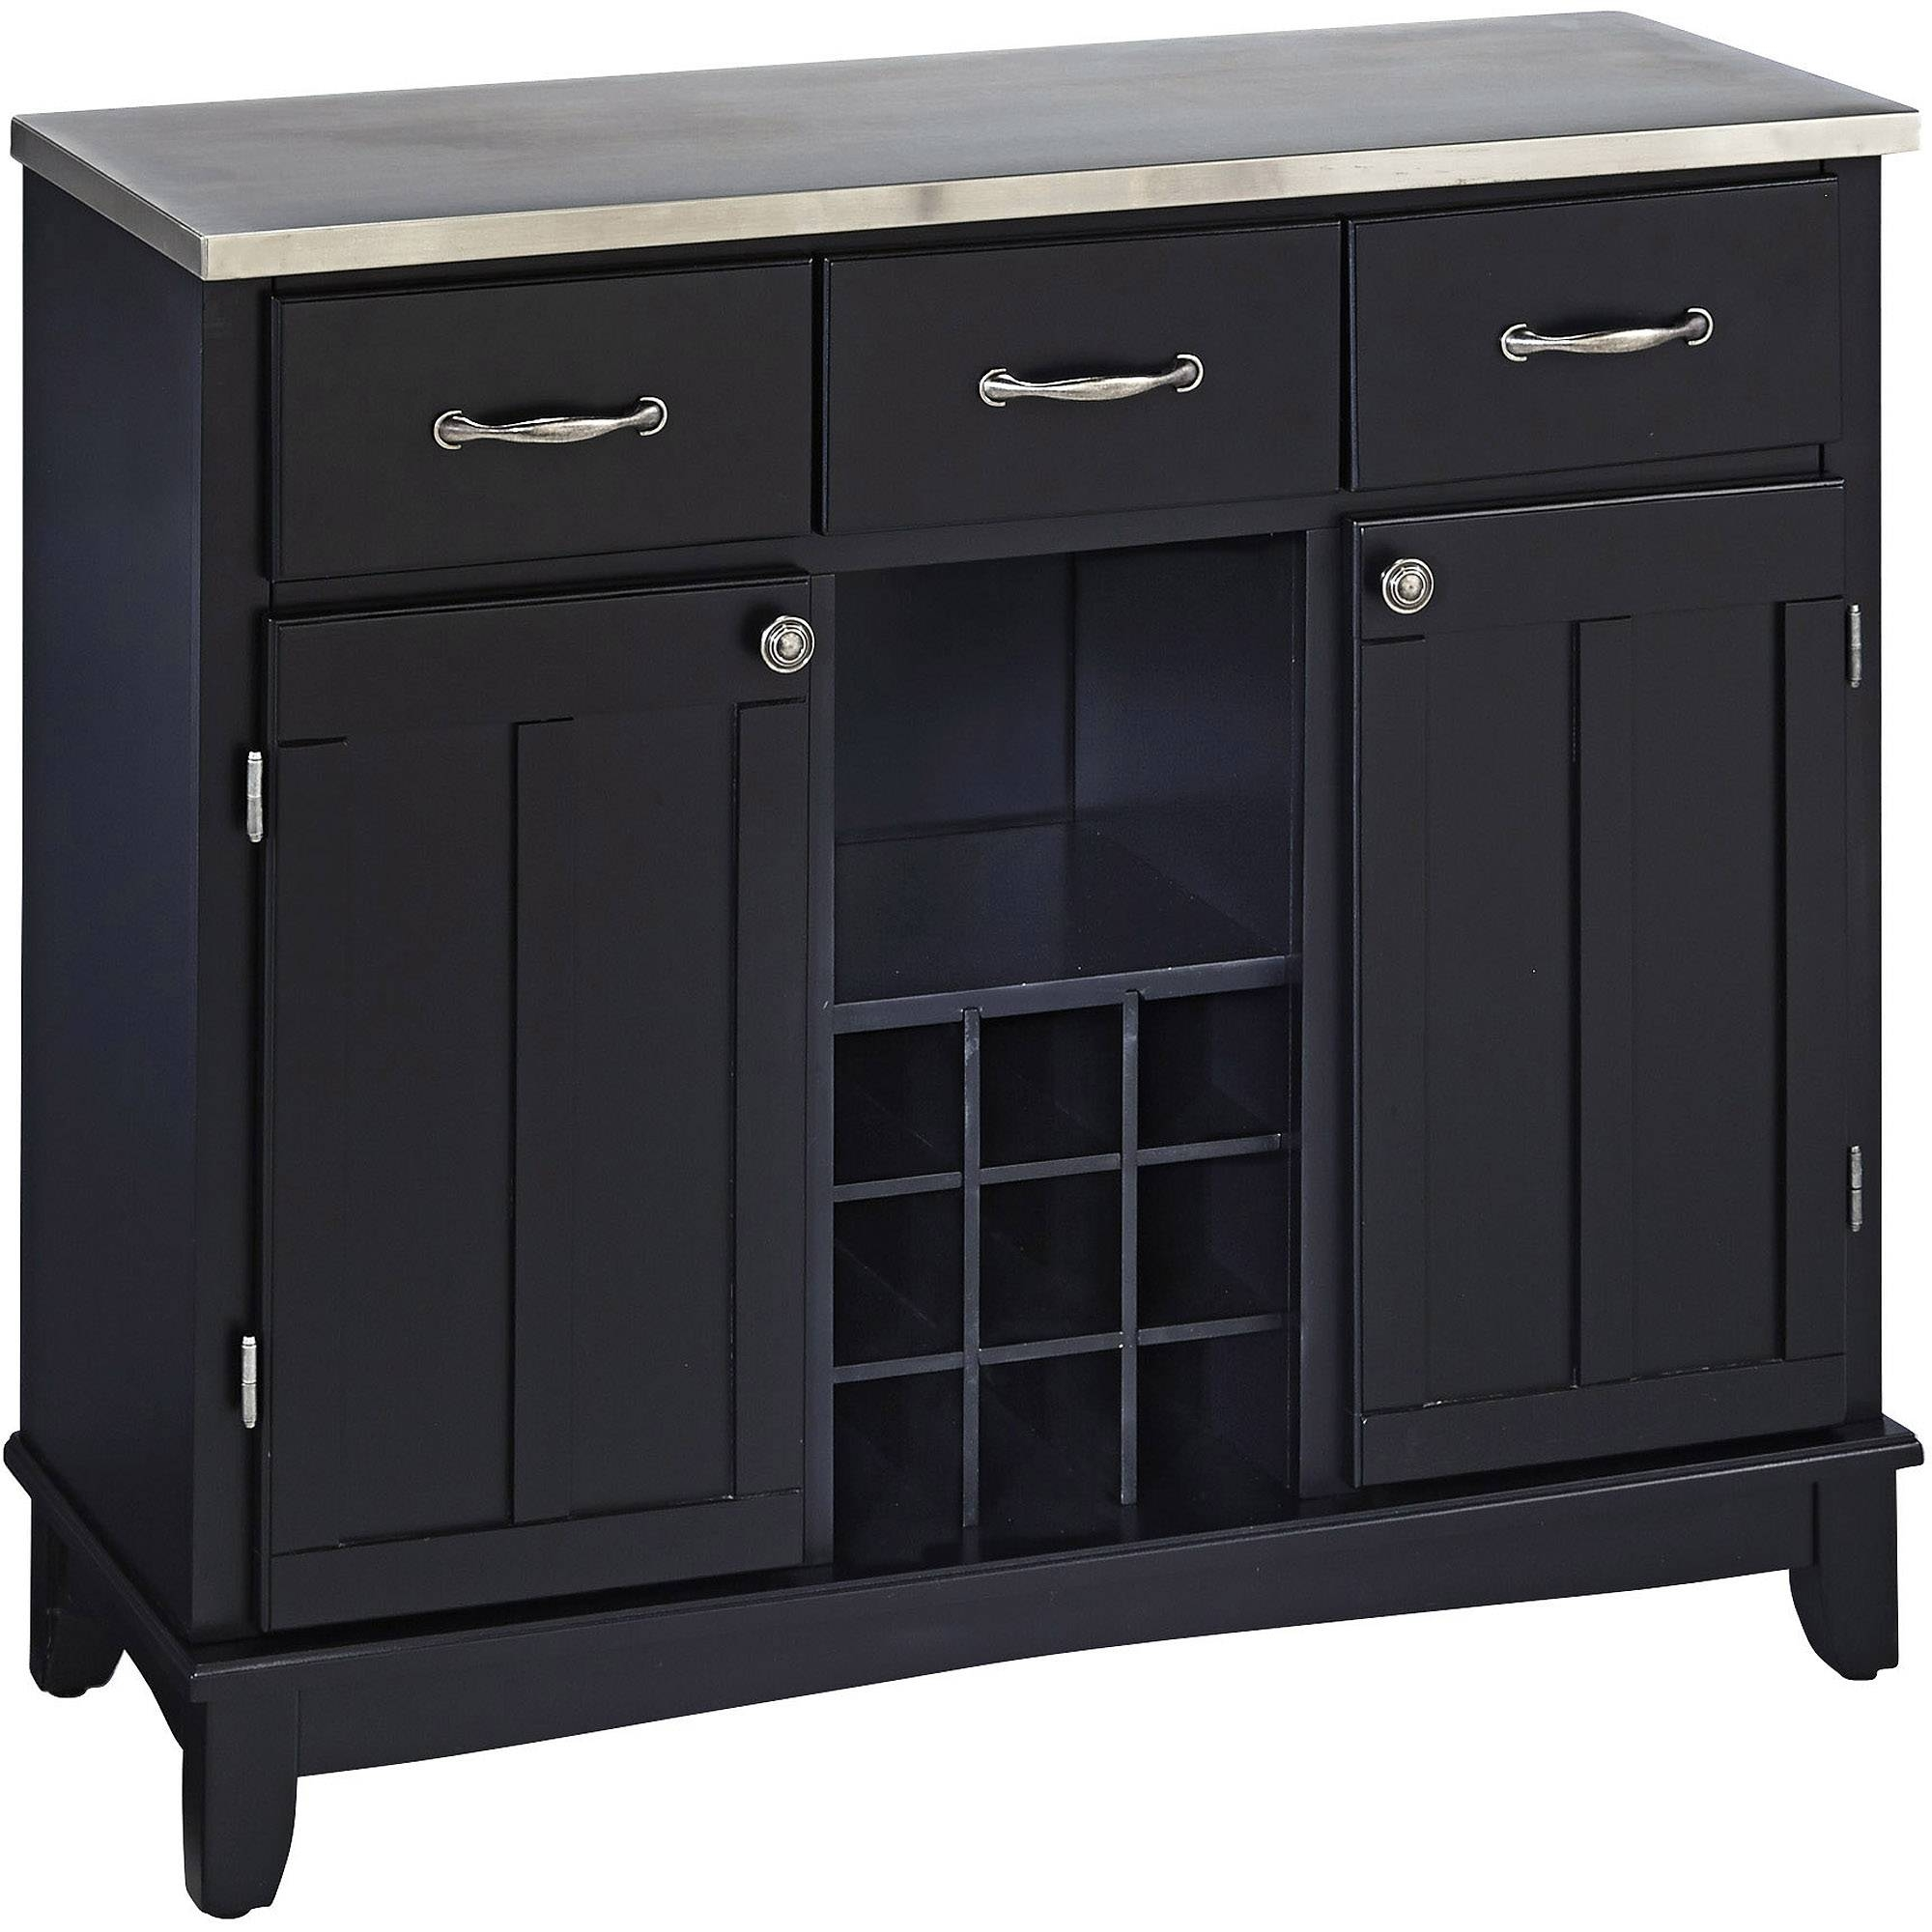 China Cabinet & Buffet Furniture : Kitchen & Dining Furniture within Dark Sideboards Furniture (Image 7 of 30)